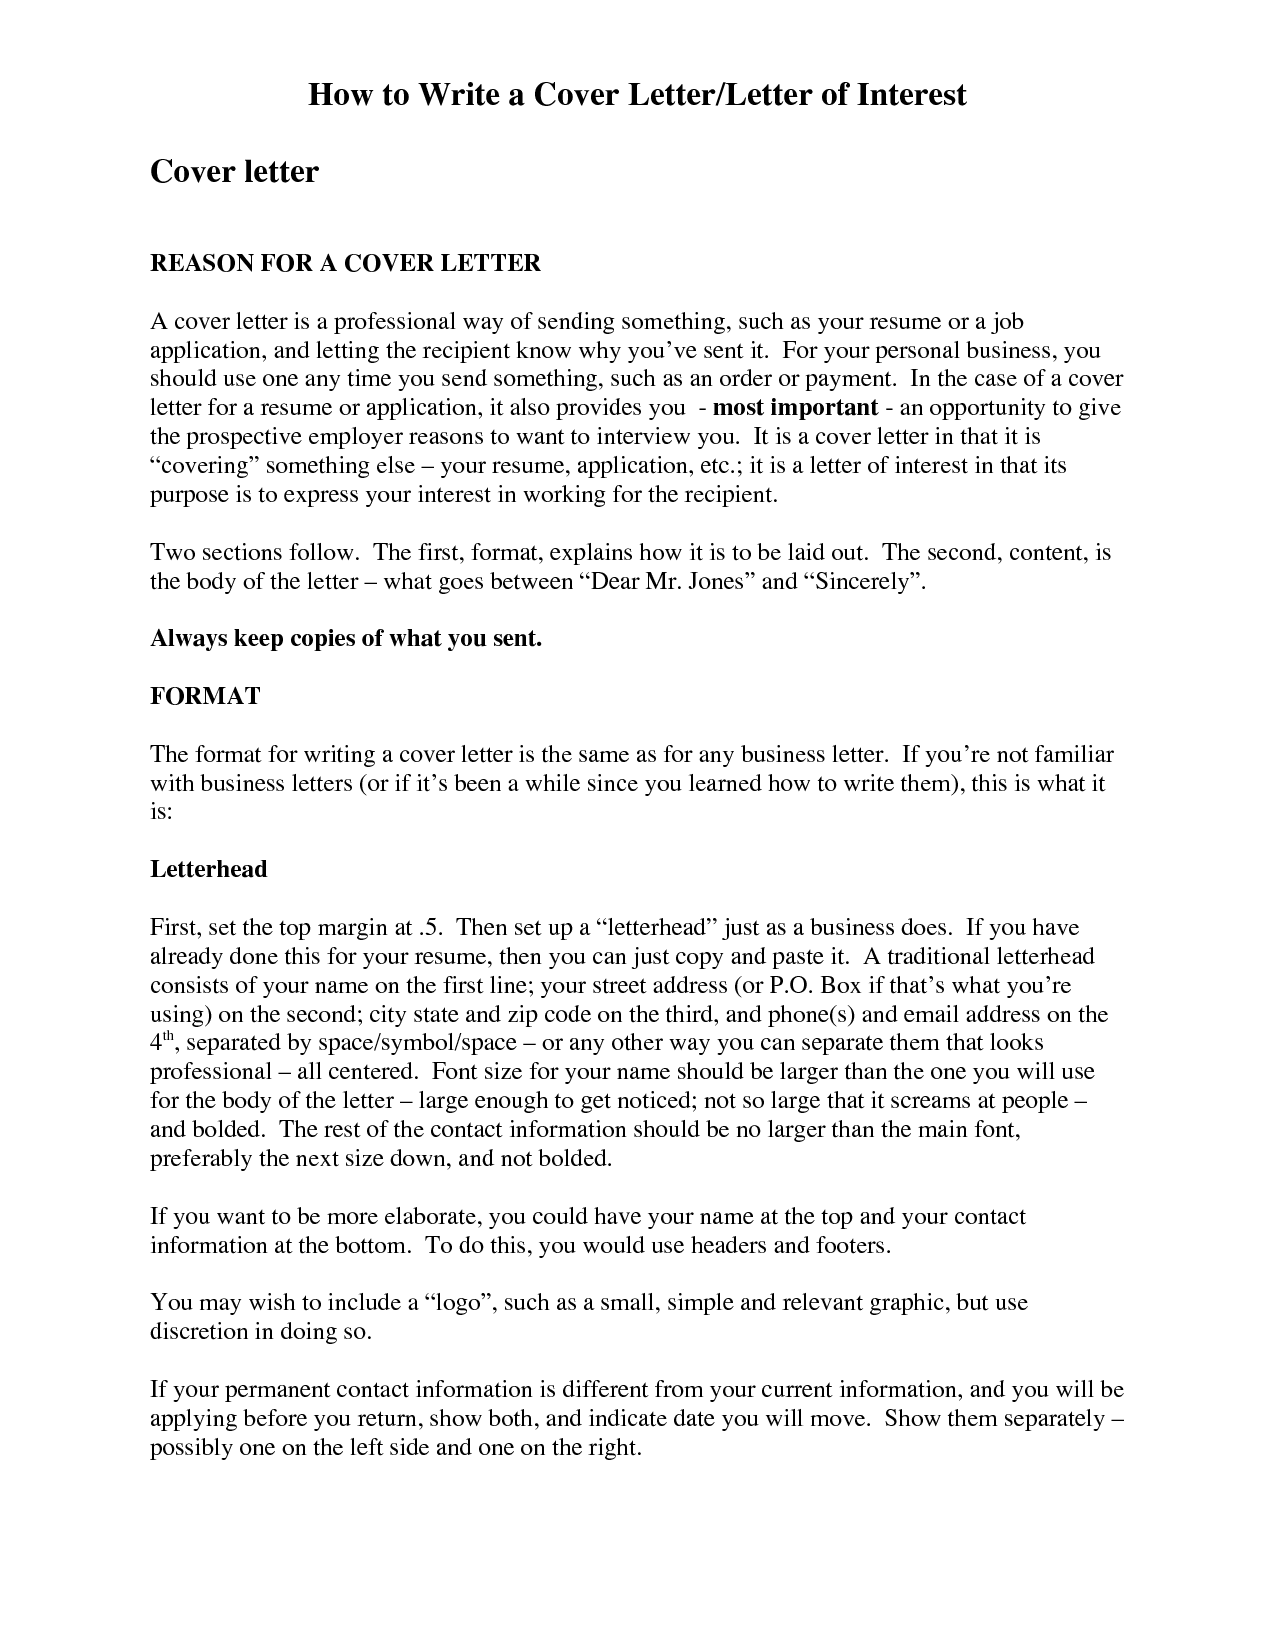 howto write a cover letter - how to write a cover letter of interest example for a job